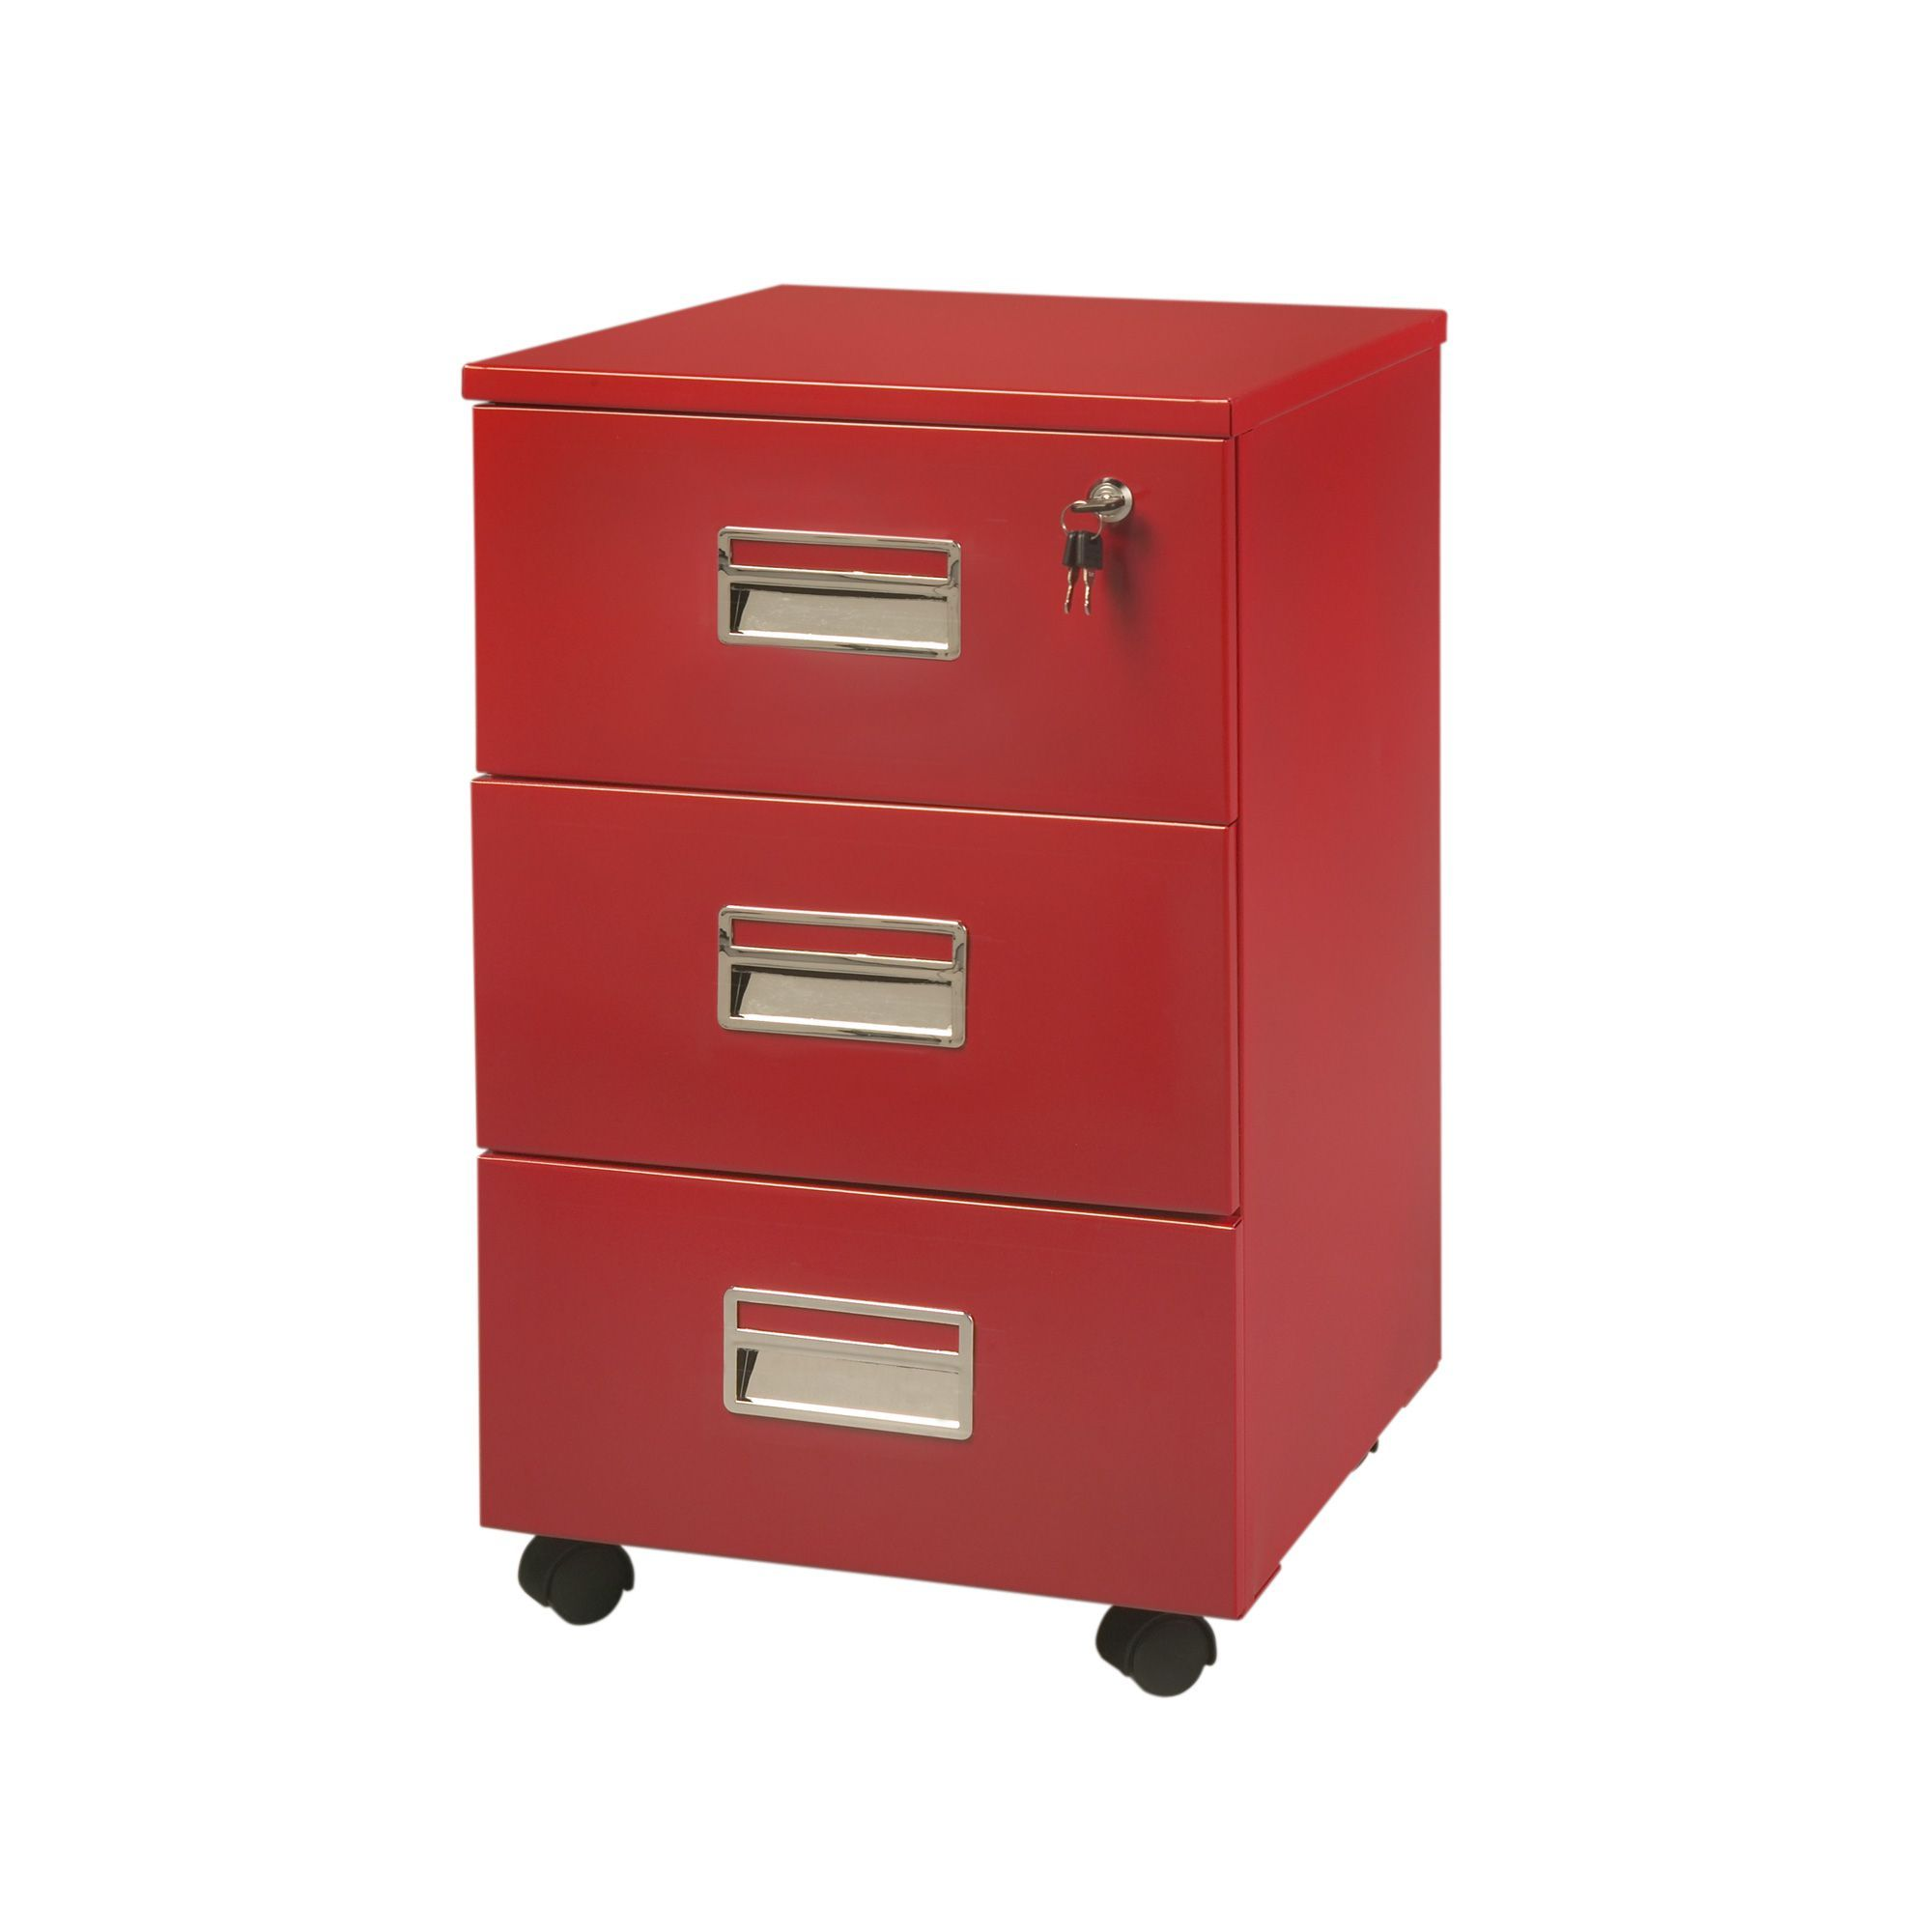 caisson 3 tiroirs sur roulettes rouge max bureau les. Black Bedroom Furniture Sets. Home Design Ideas